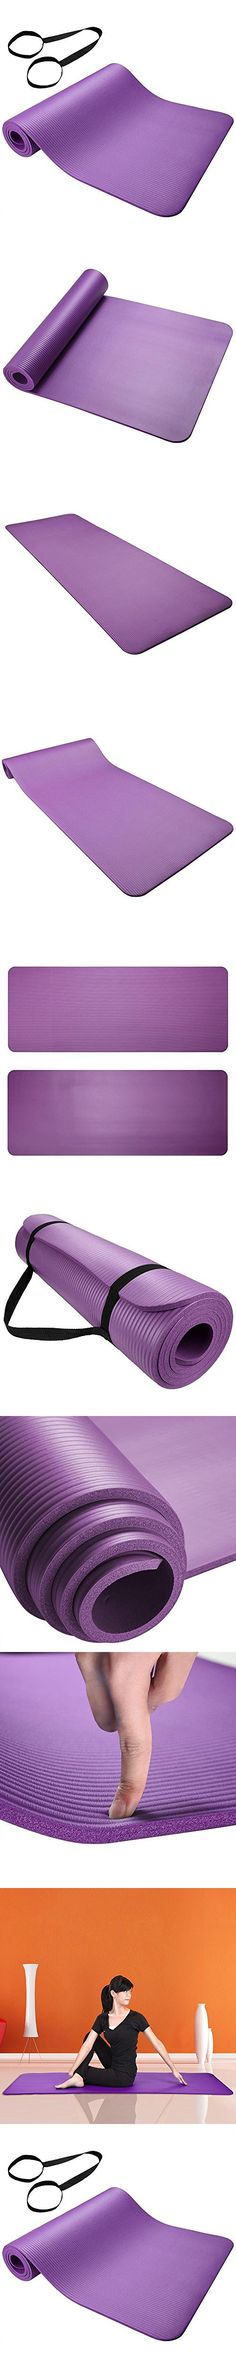 """AW Yoga Purple Exercise Mat 0.31""""/8mm Thick NBR Anti-Slip w/ Carrying Strap Sport Comfort Foam"""